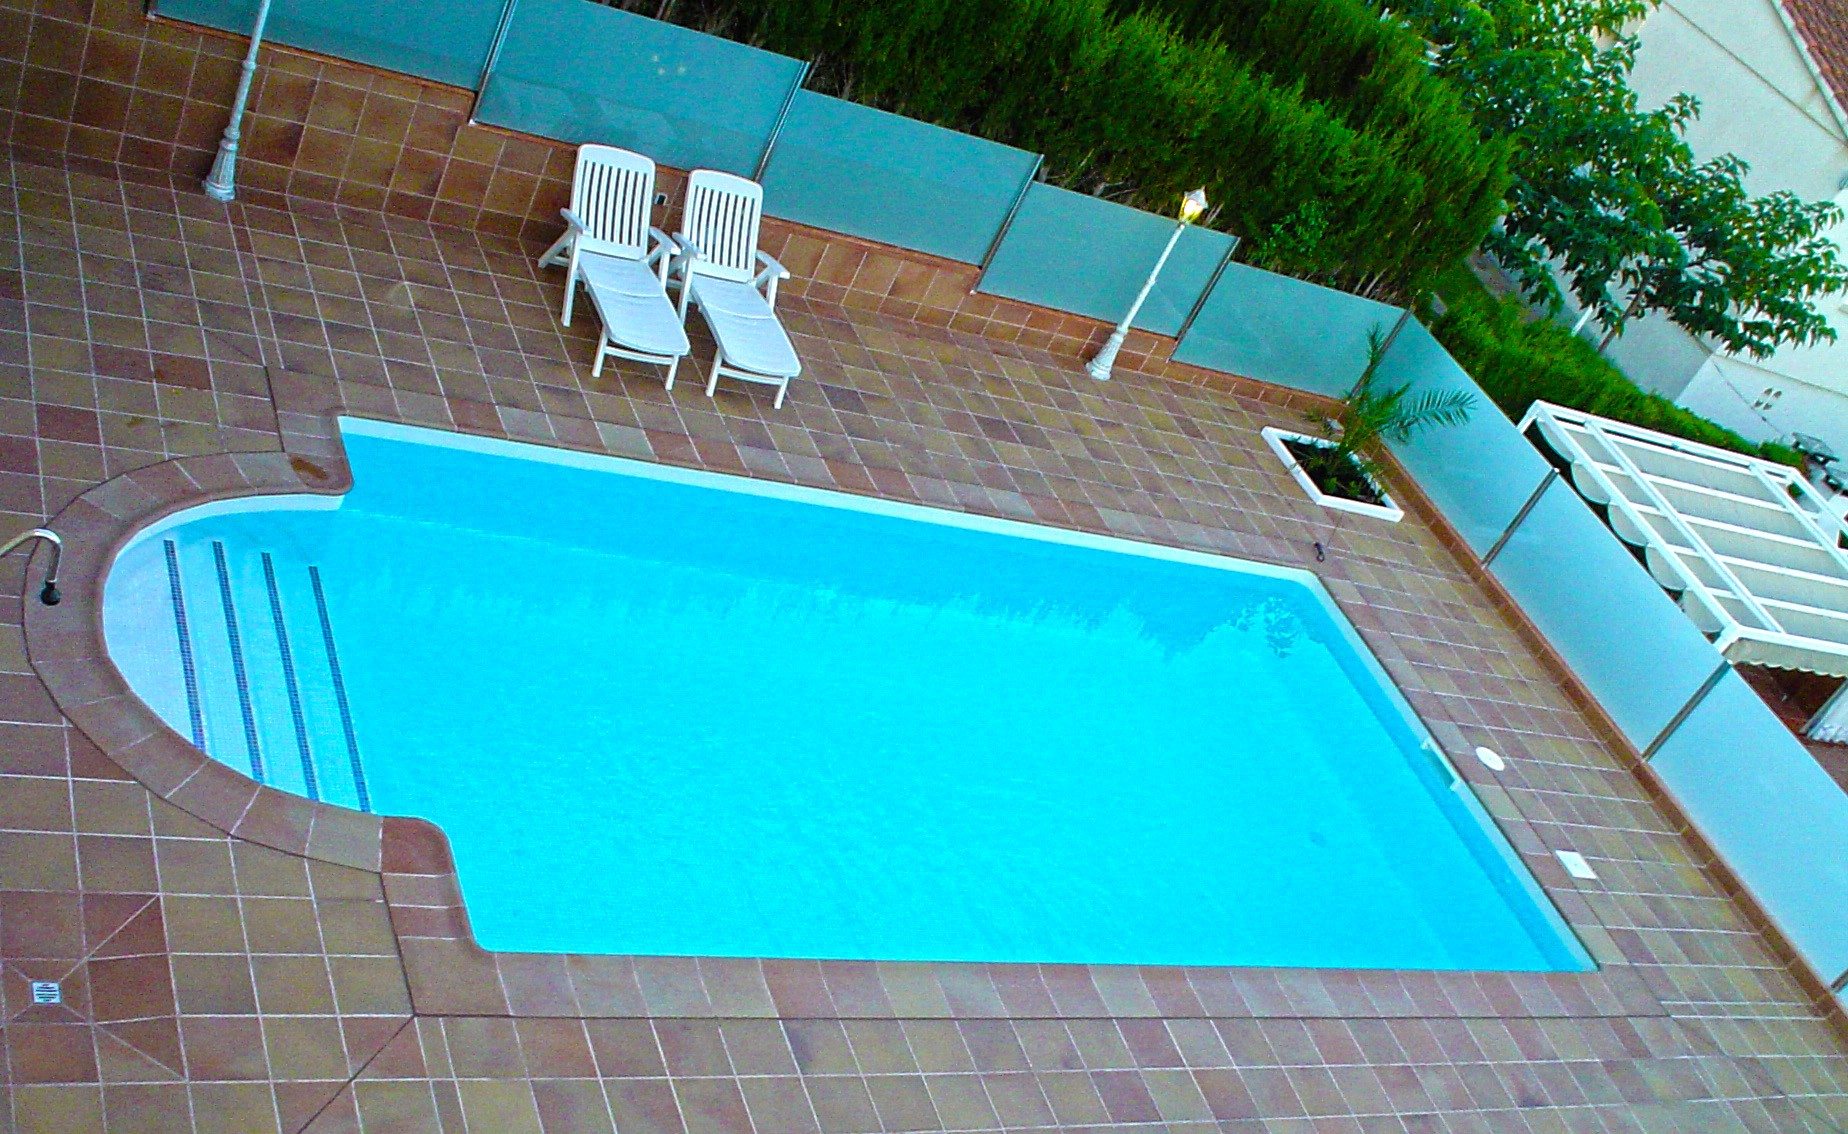 Lujoso coste piscina vi eta ideas de decoraci n de for Precio construir piscina obra